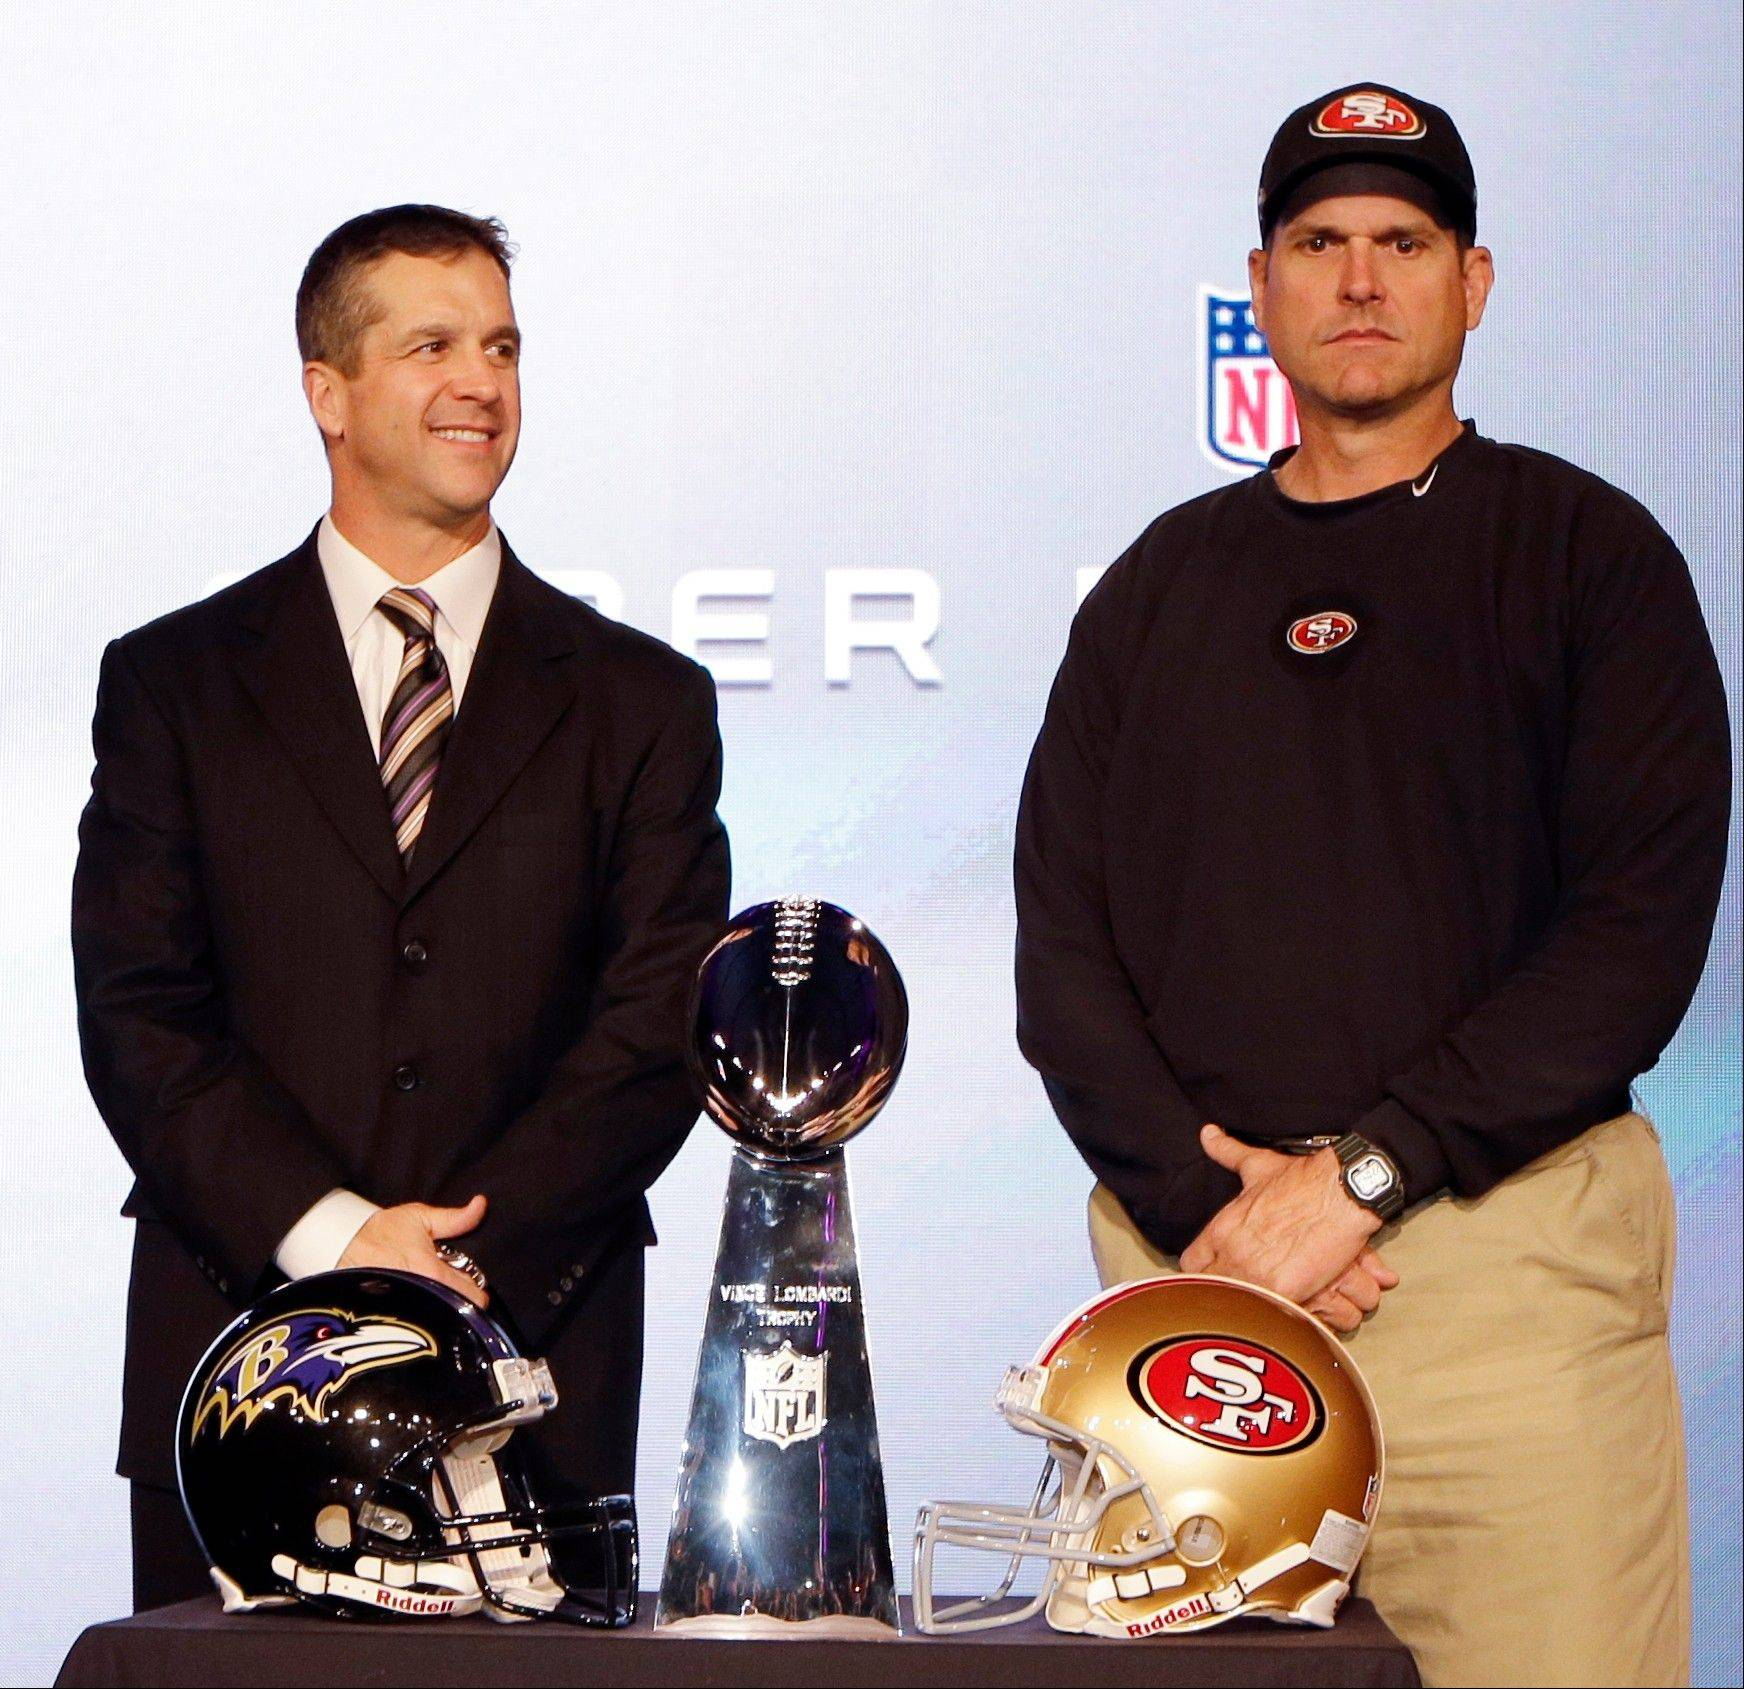 San Francisco 49ers head coach Jim Harbaugh and Baltimore Ravens head coach John Harbaugh participate Friday in a news conference before Super Bowl XLVII.